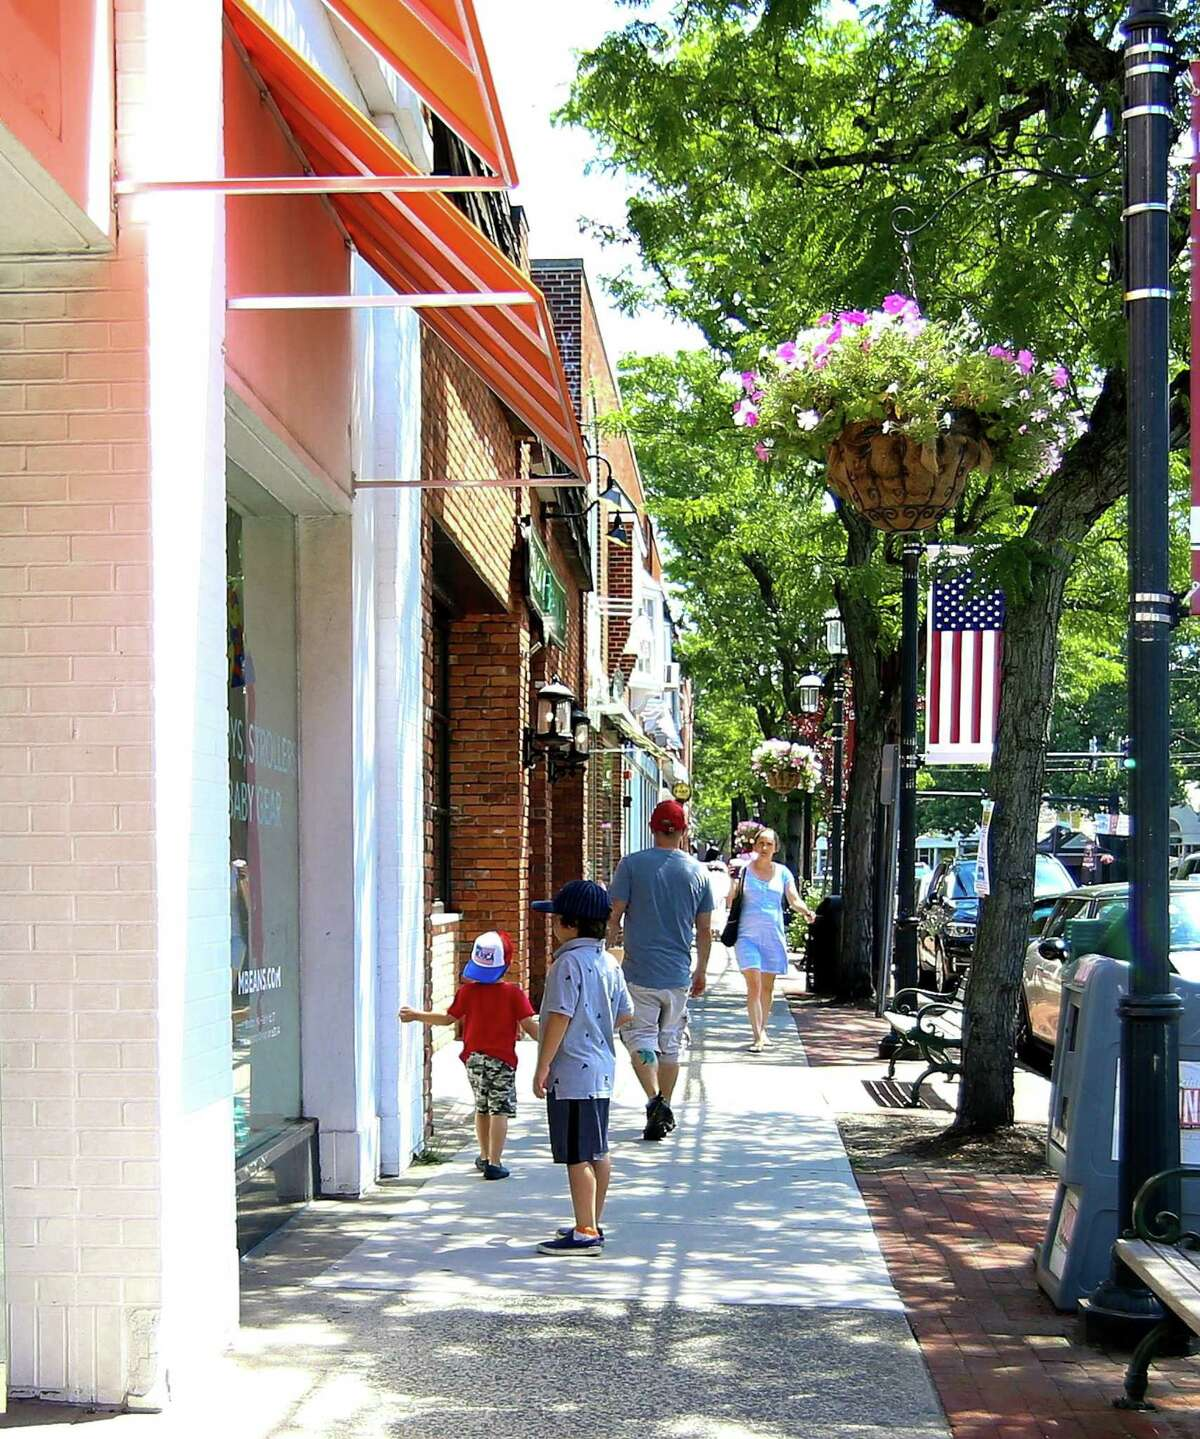 Retailers in Fairfield are participating in Connecticut Tax Free Week, which begins on Aug. 15 and goes through Aug. 21.